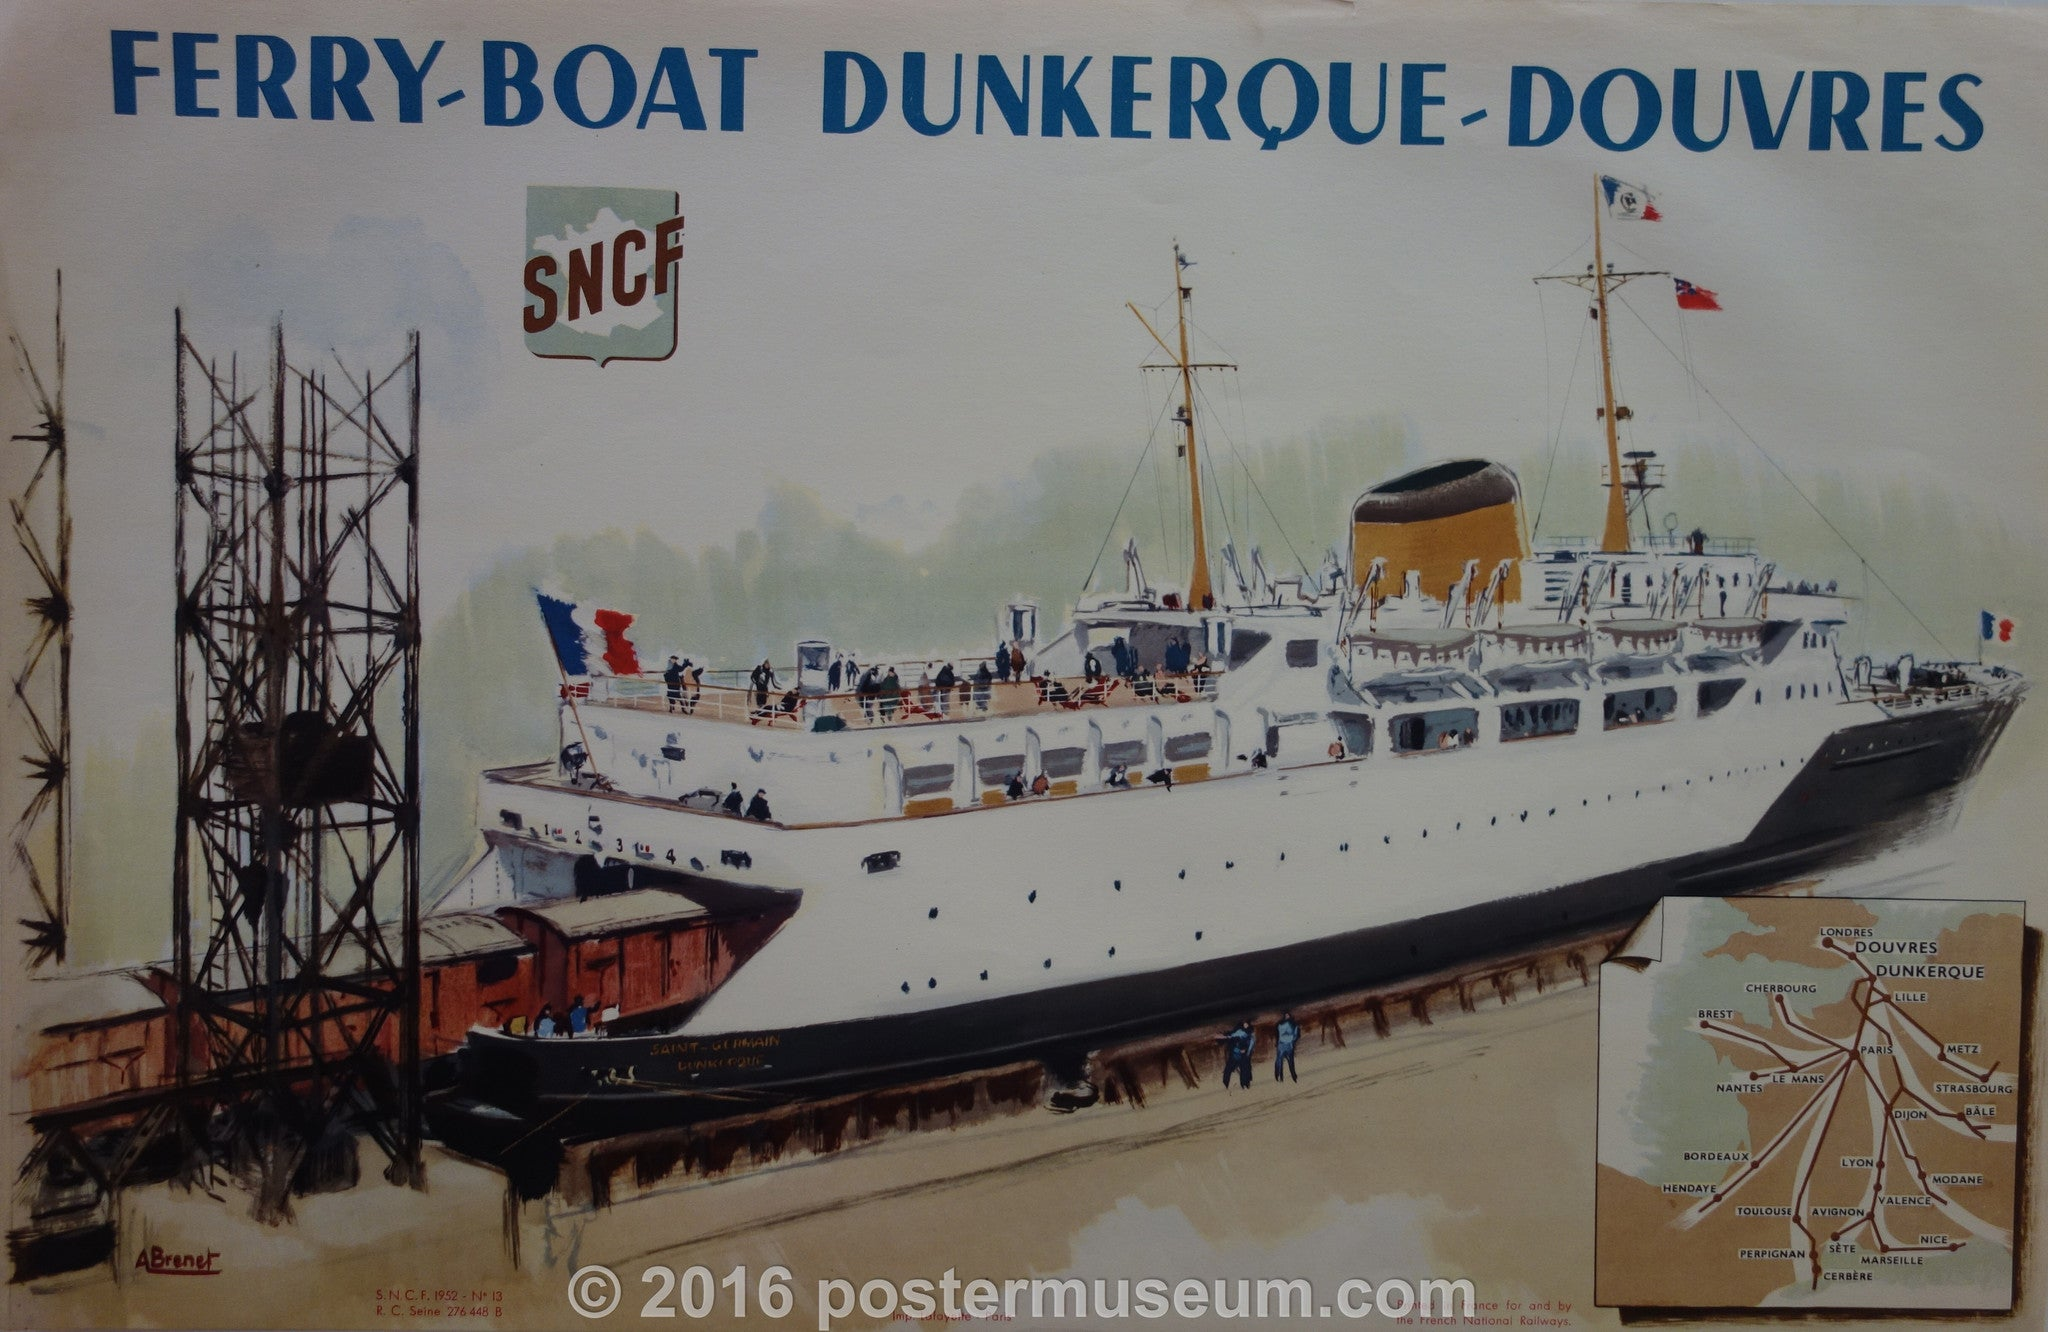 Ferry-Boat Dunkerque-Douvres